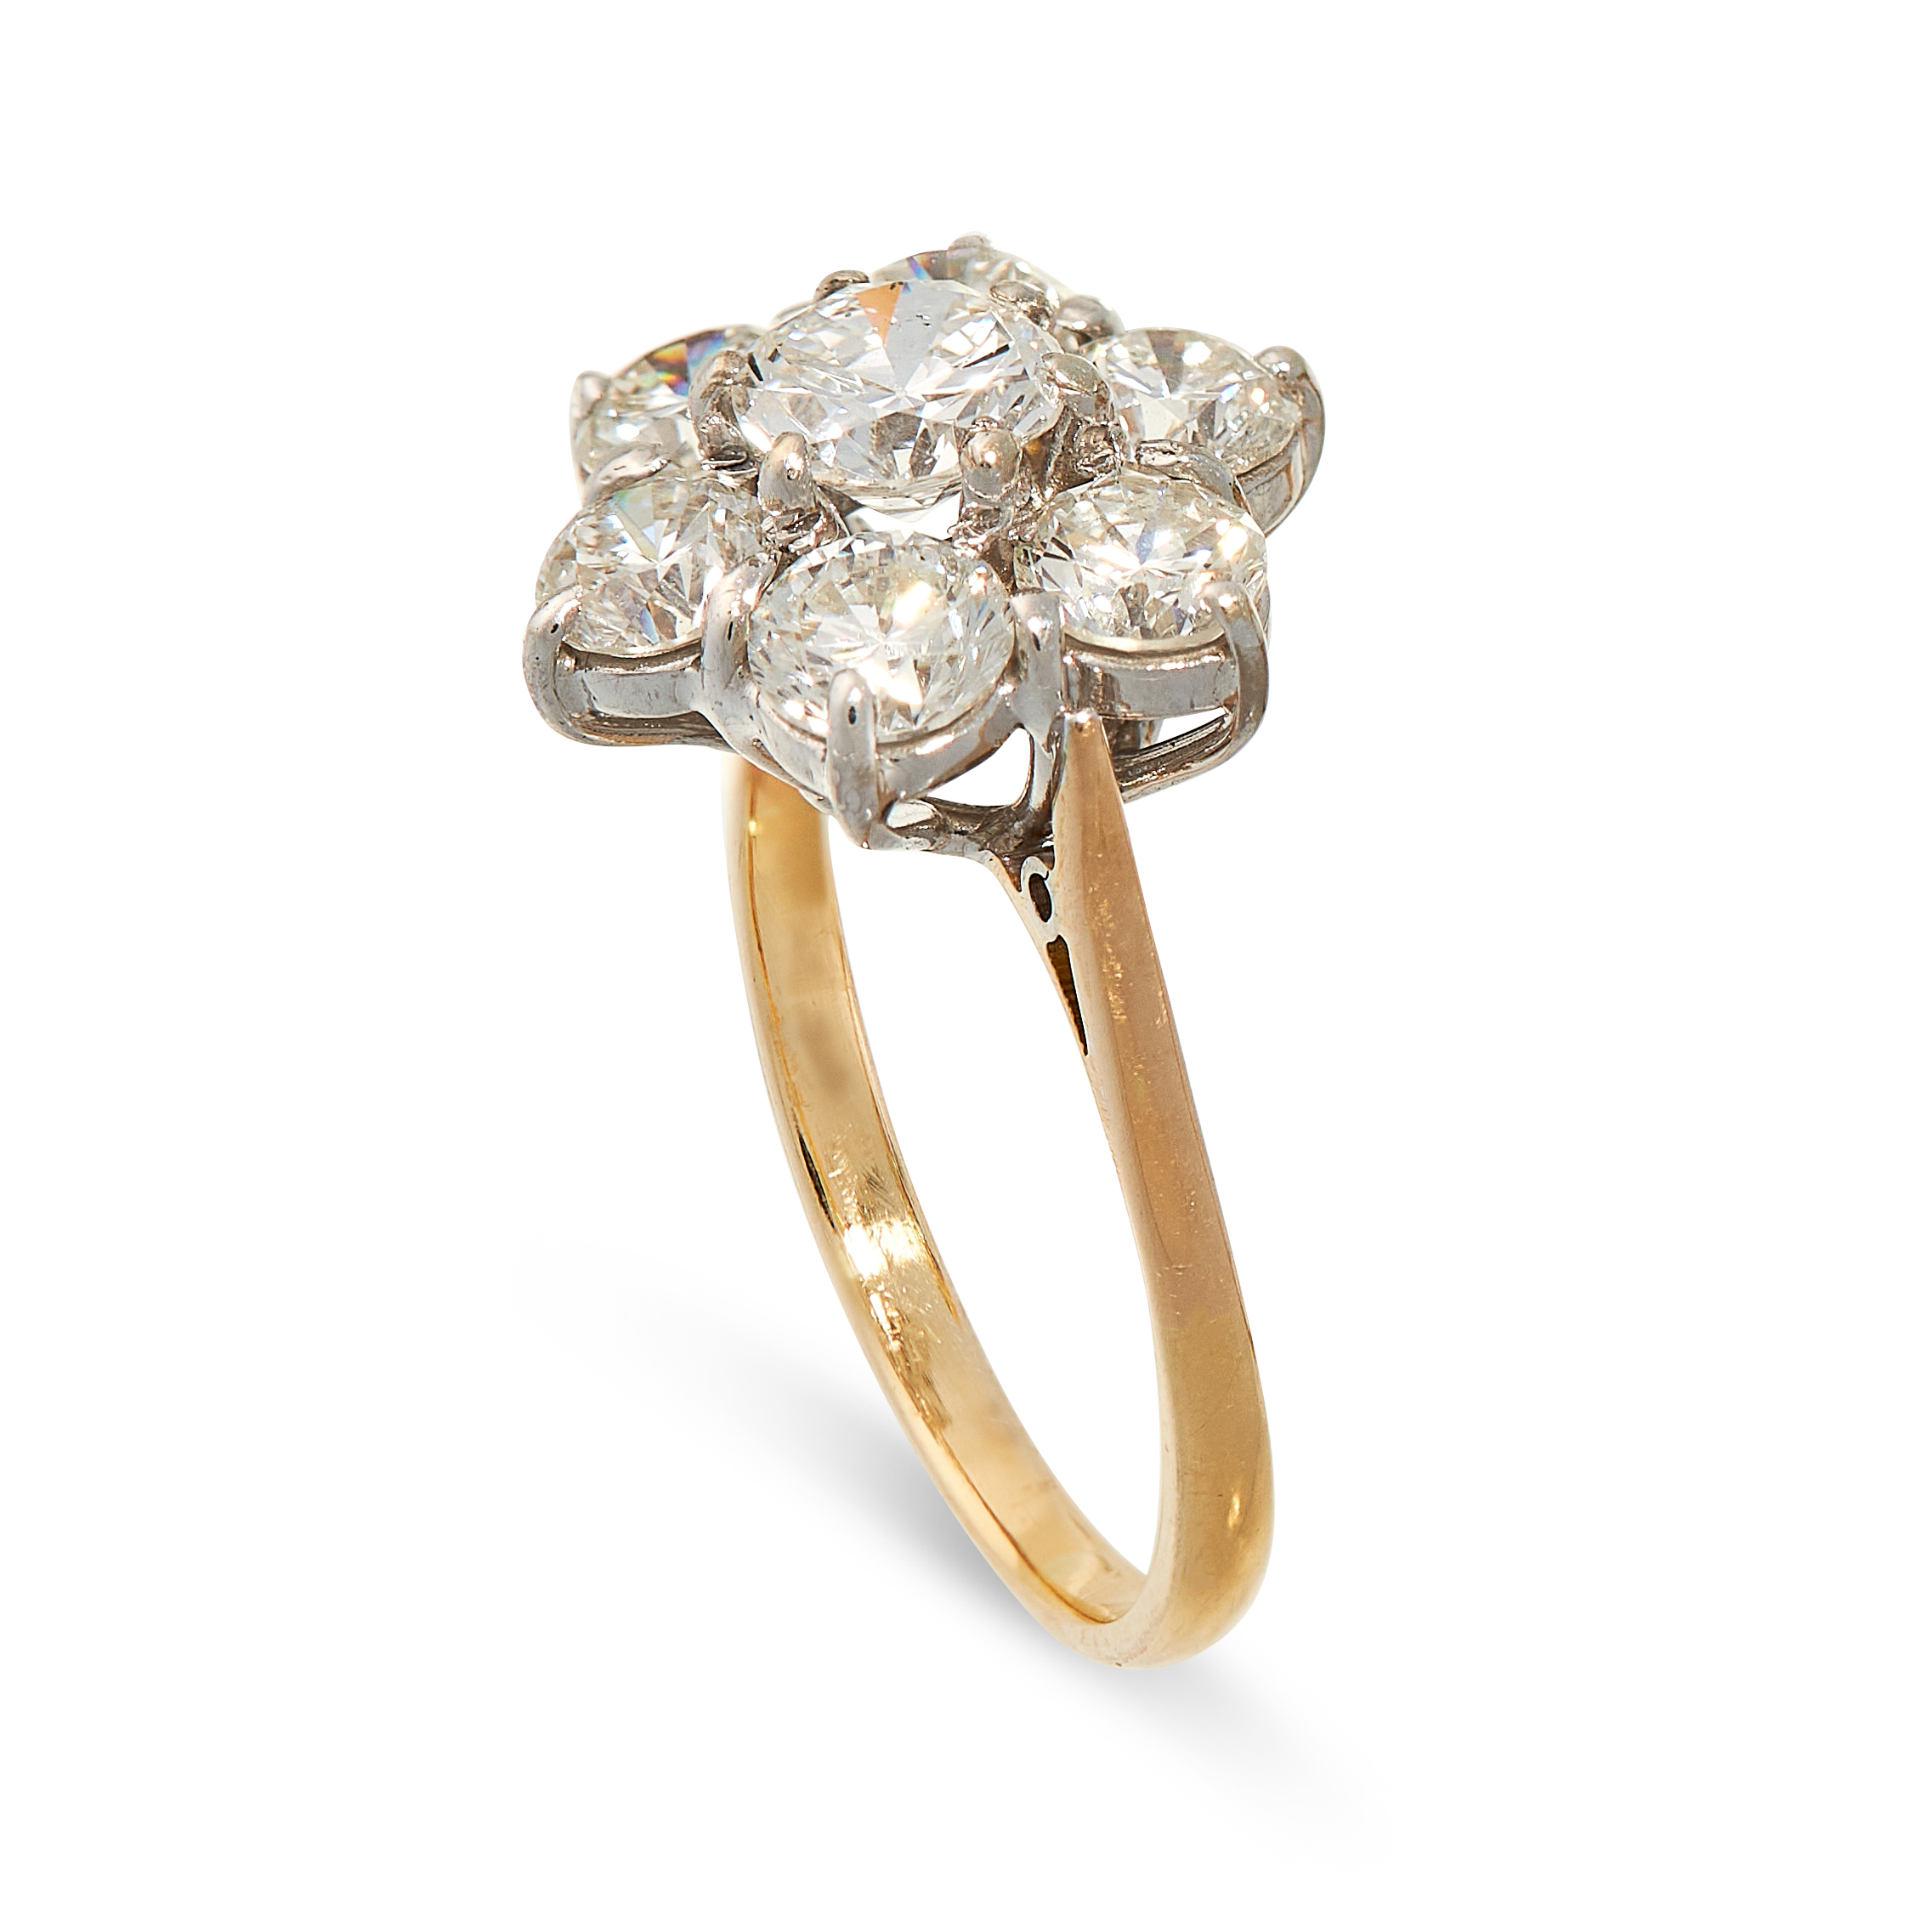 A DIAMOND CLUSTER RING in 18ct yellow gold, set with a principal round cut diamond of 0.61 carats, - Image 2 of 2